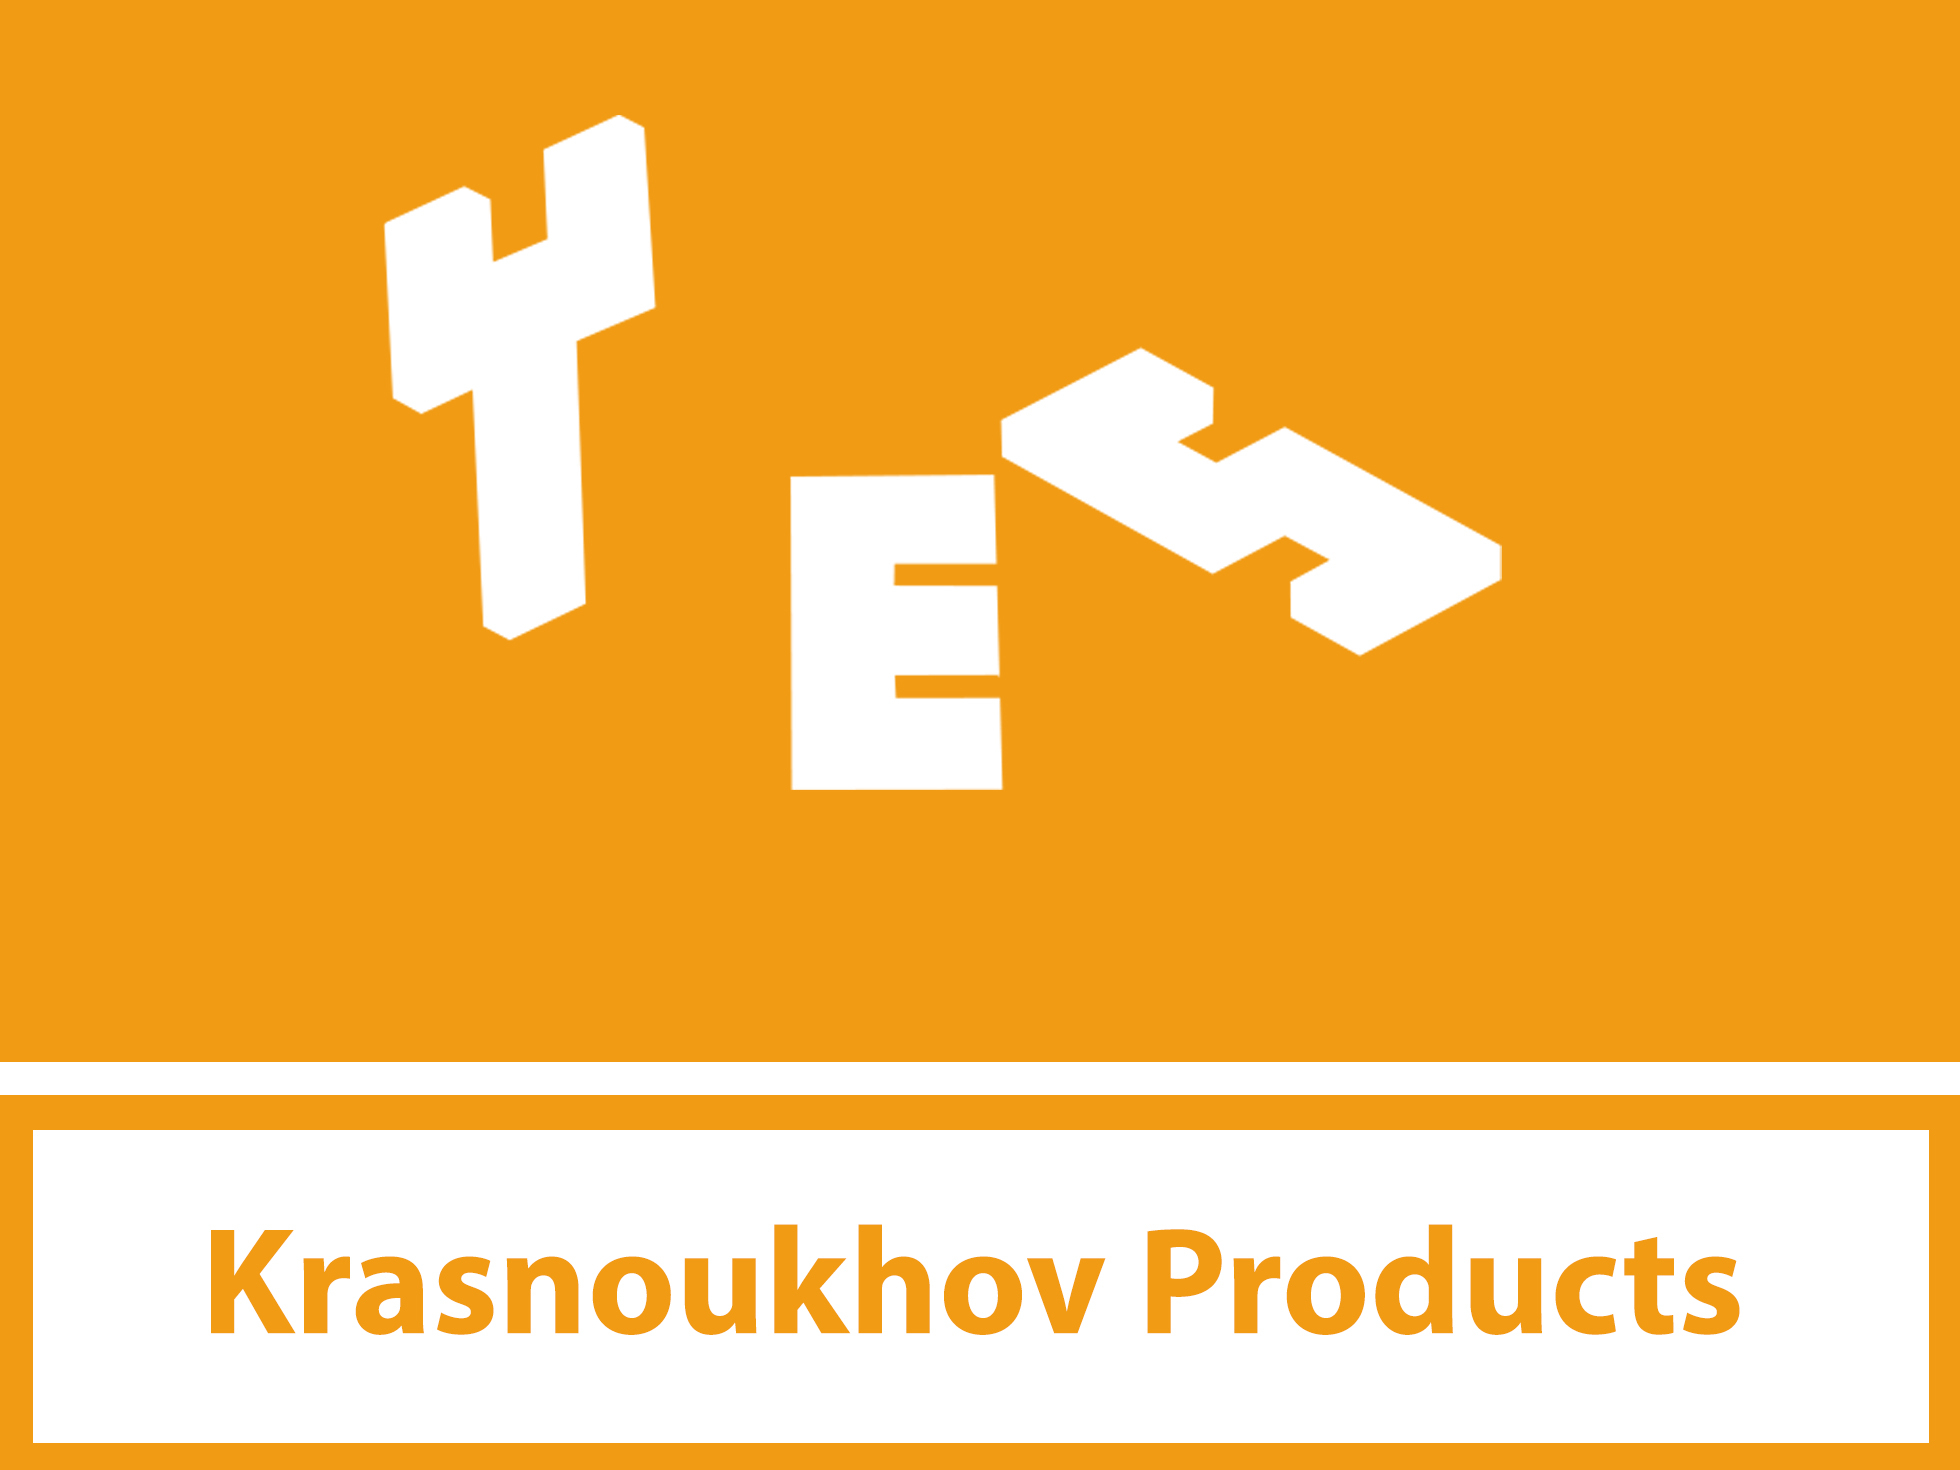 krasnoukhov-products